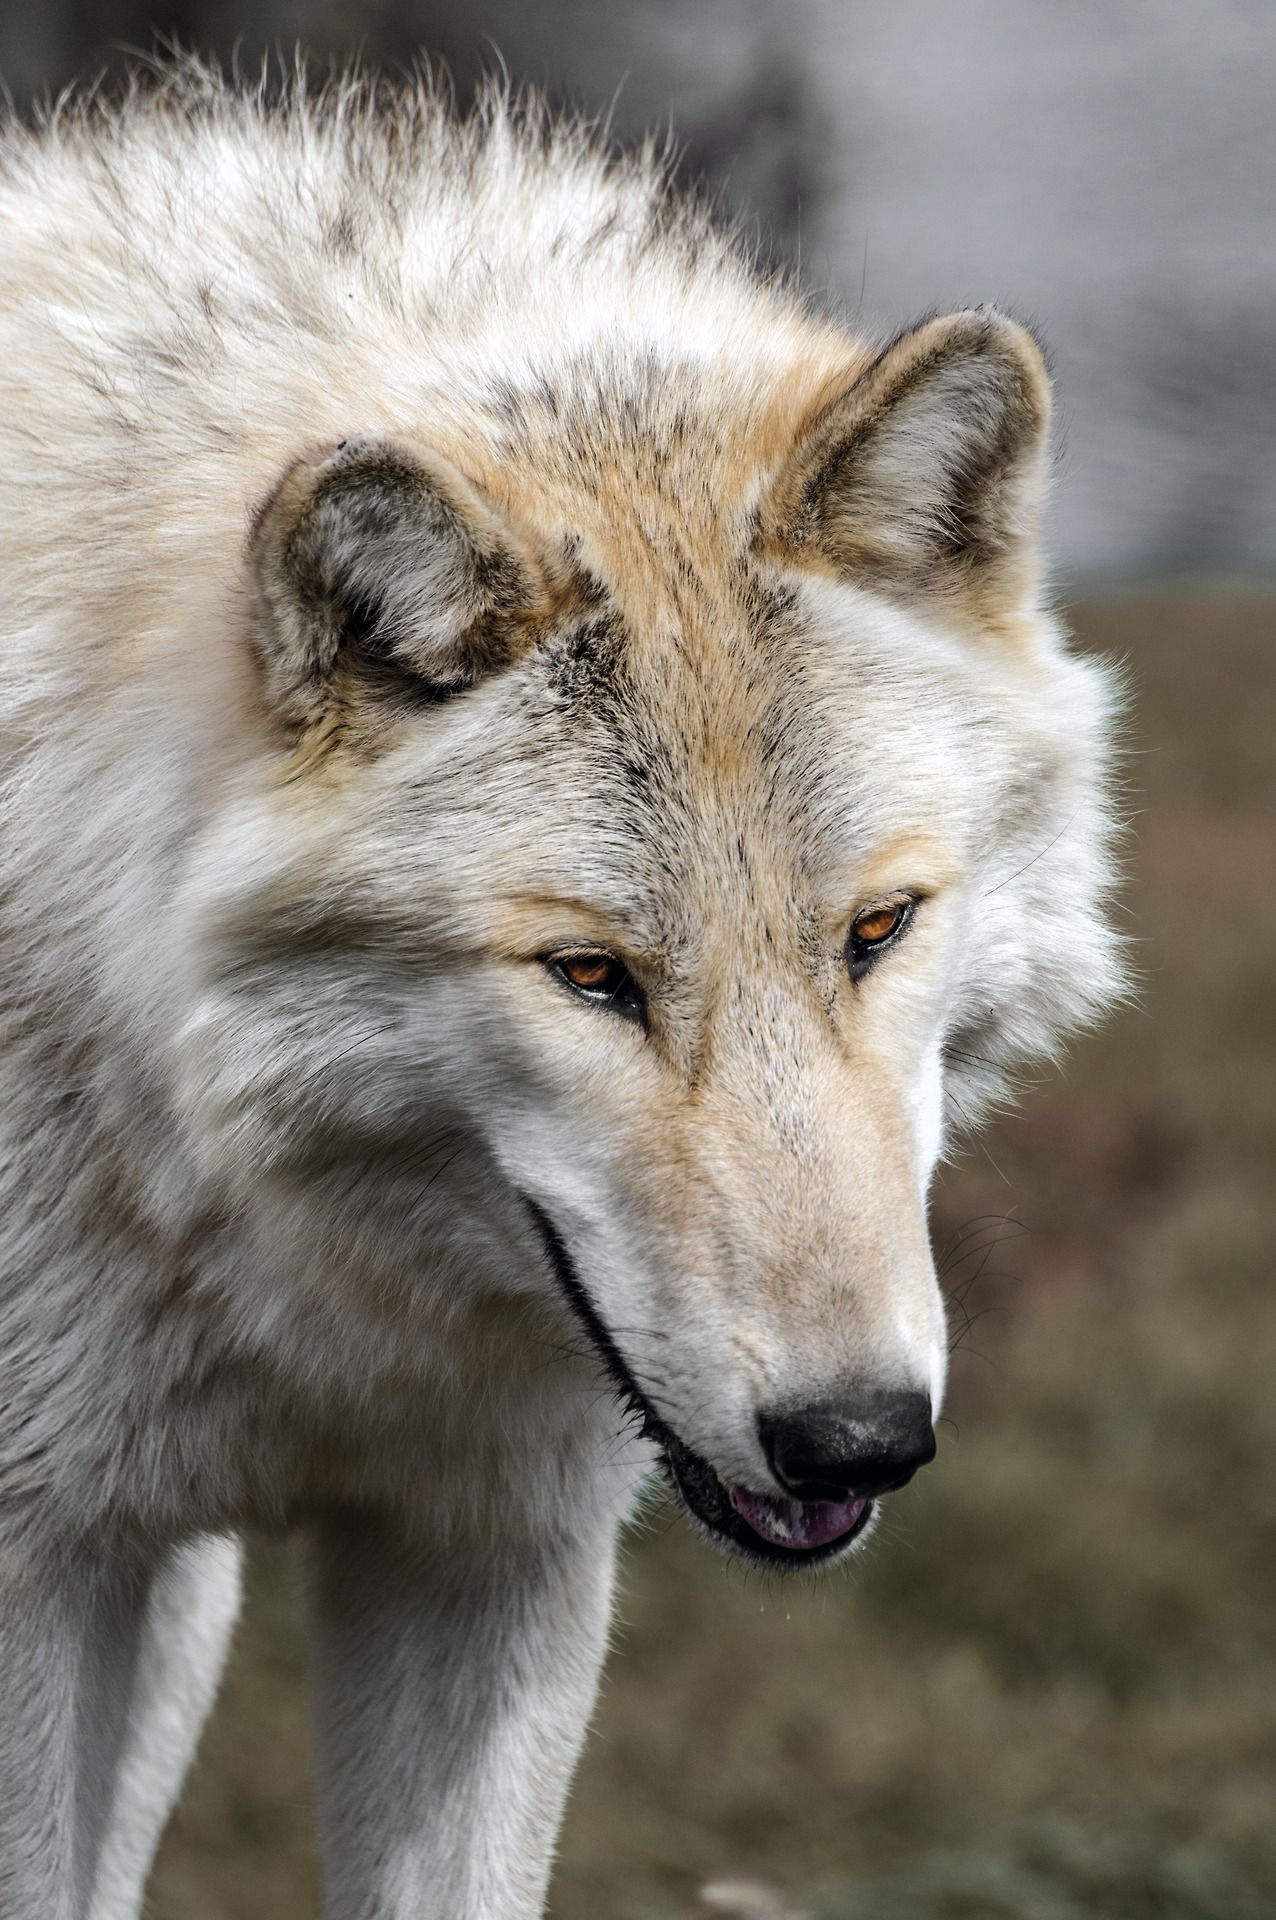 This is one happy looking wolf!